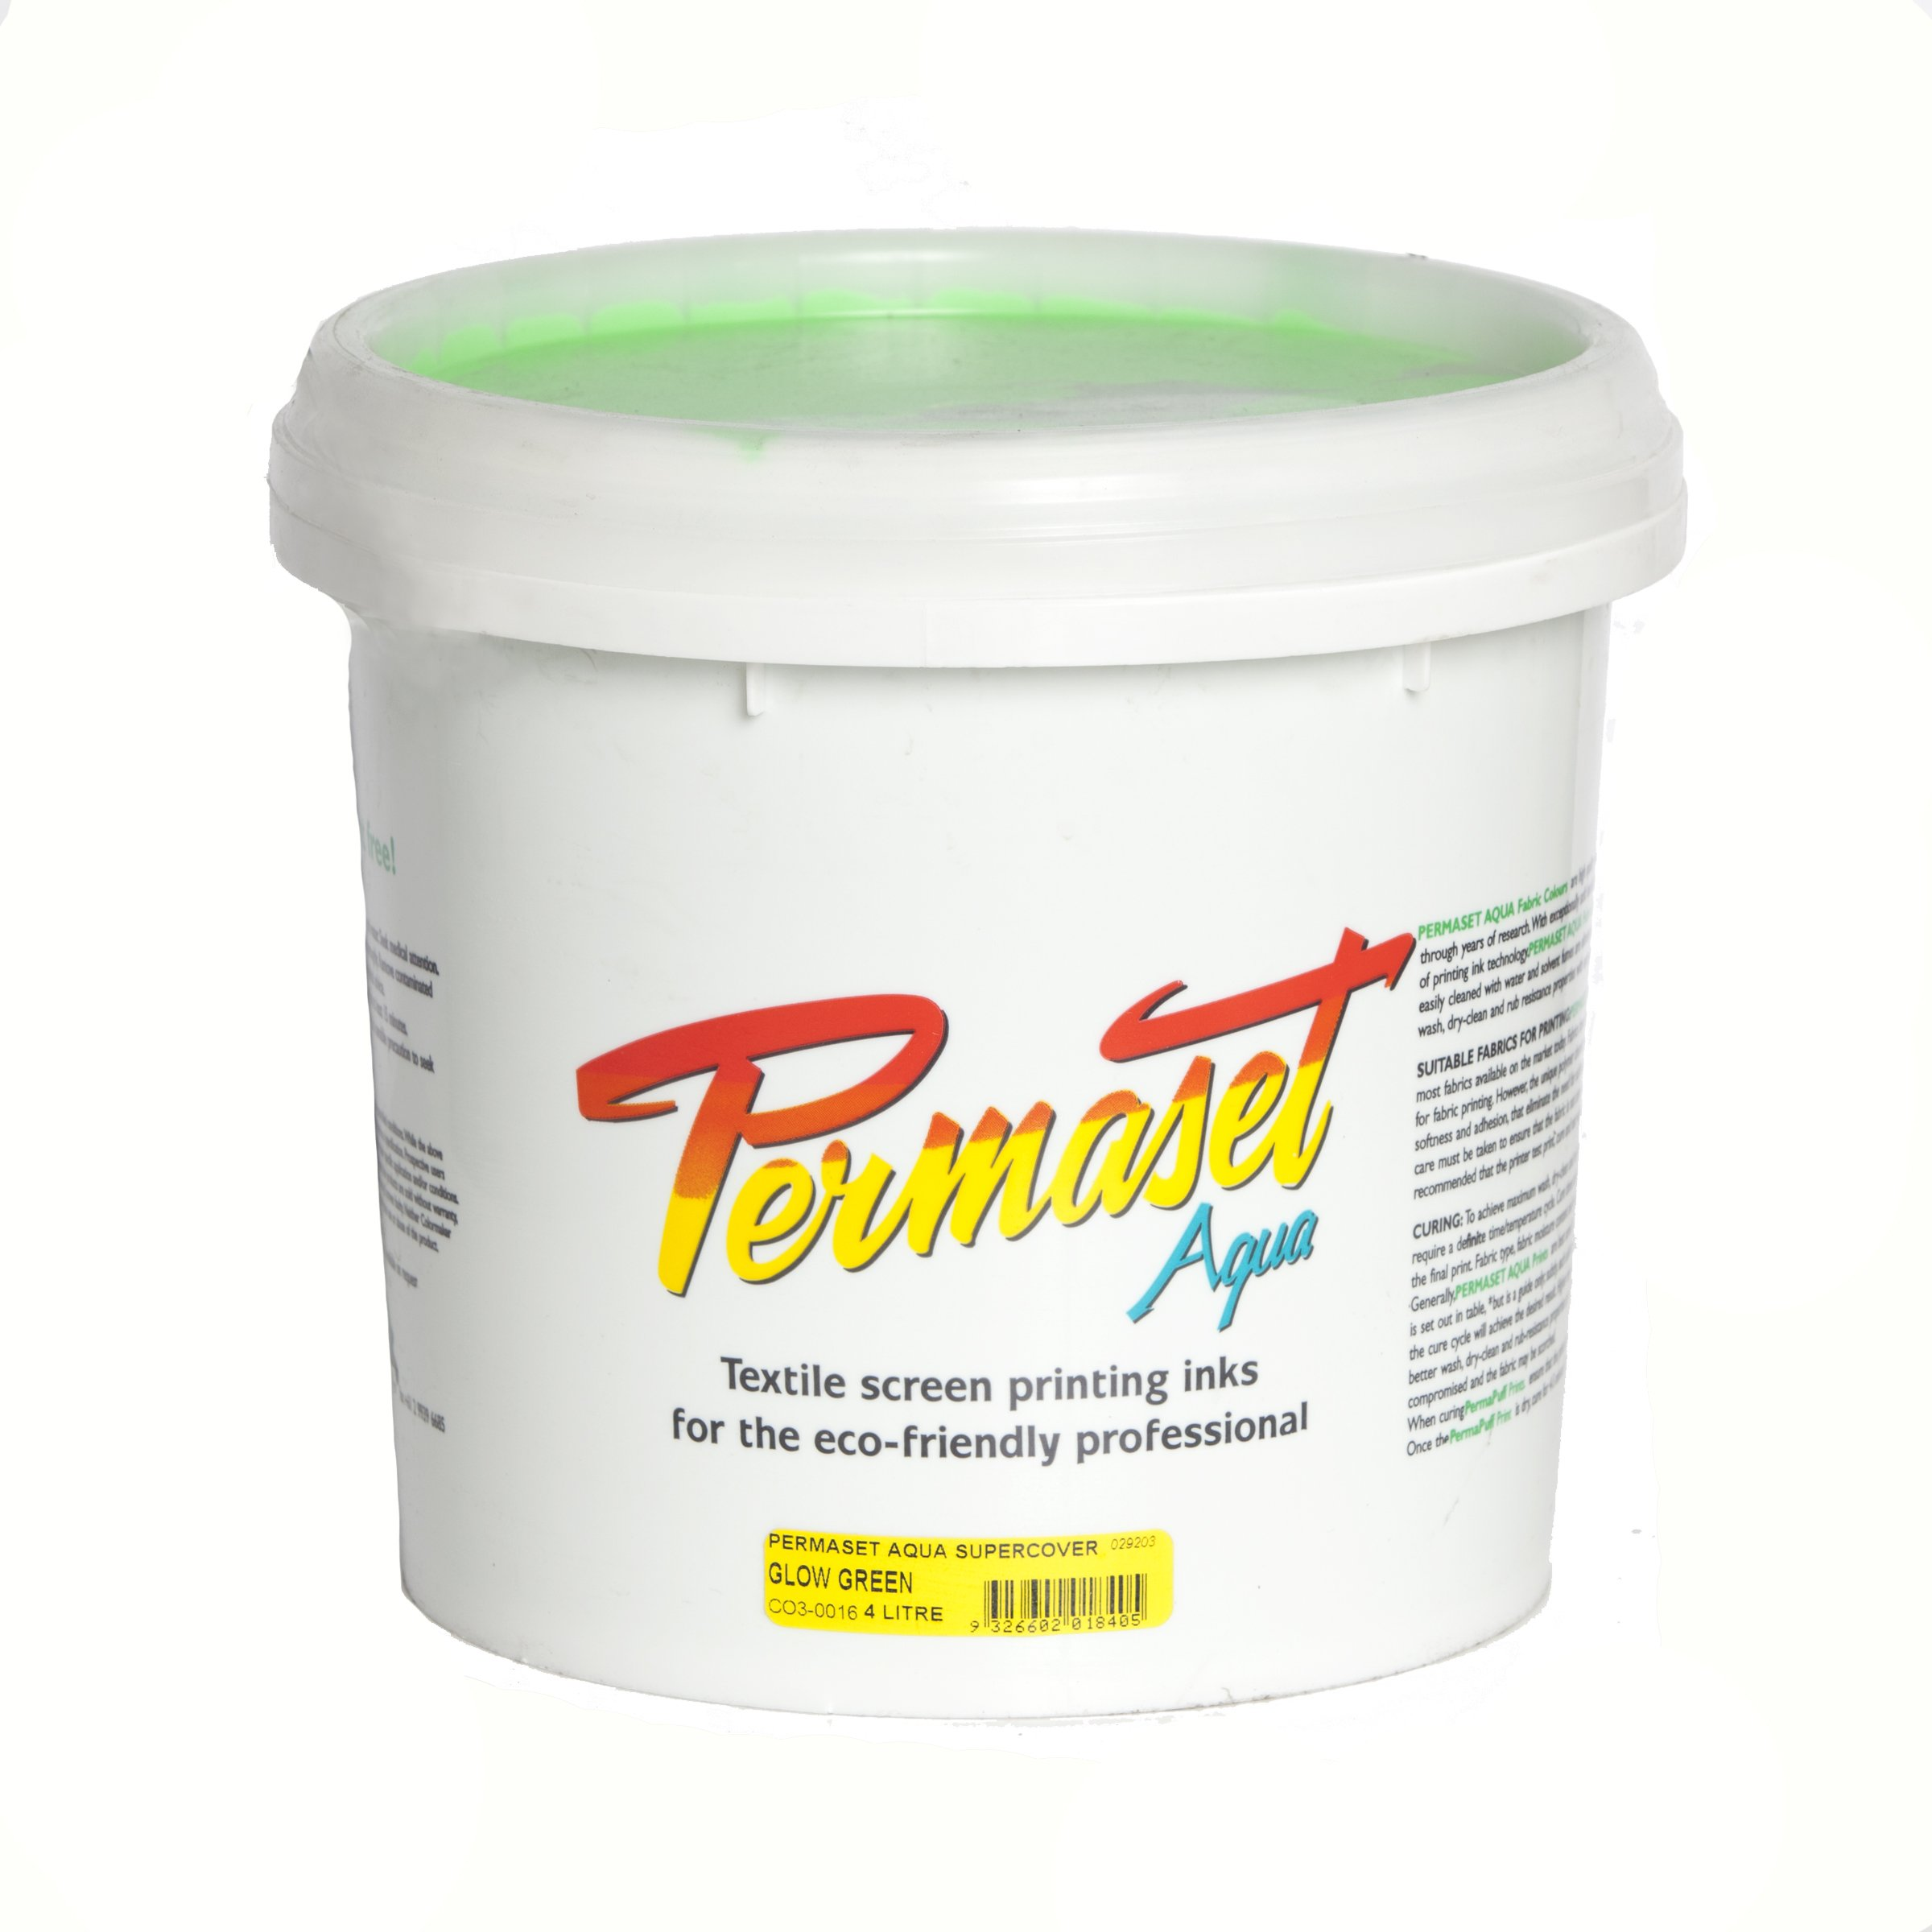 Permaset Aqua Supercover 4 Litre Fabric Printing Ink - Glow Green by OfficeMarket